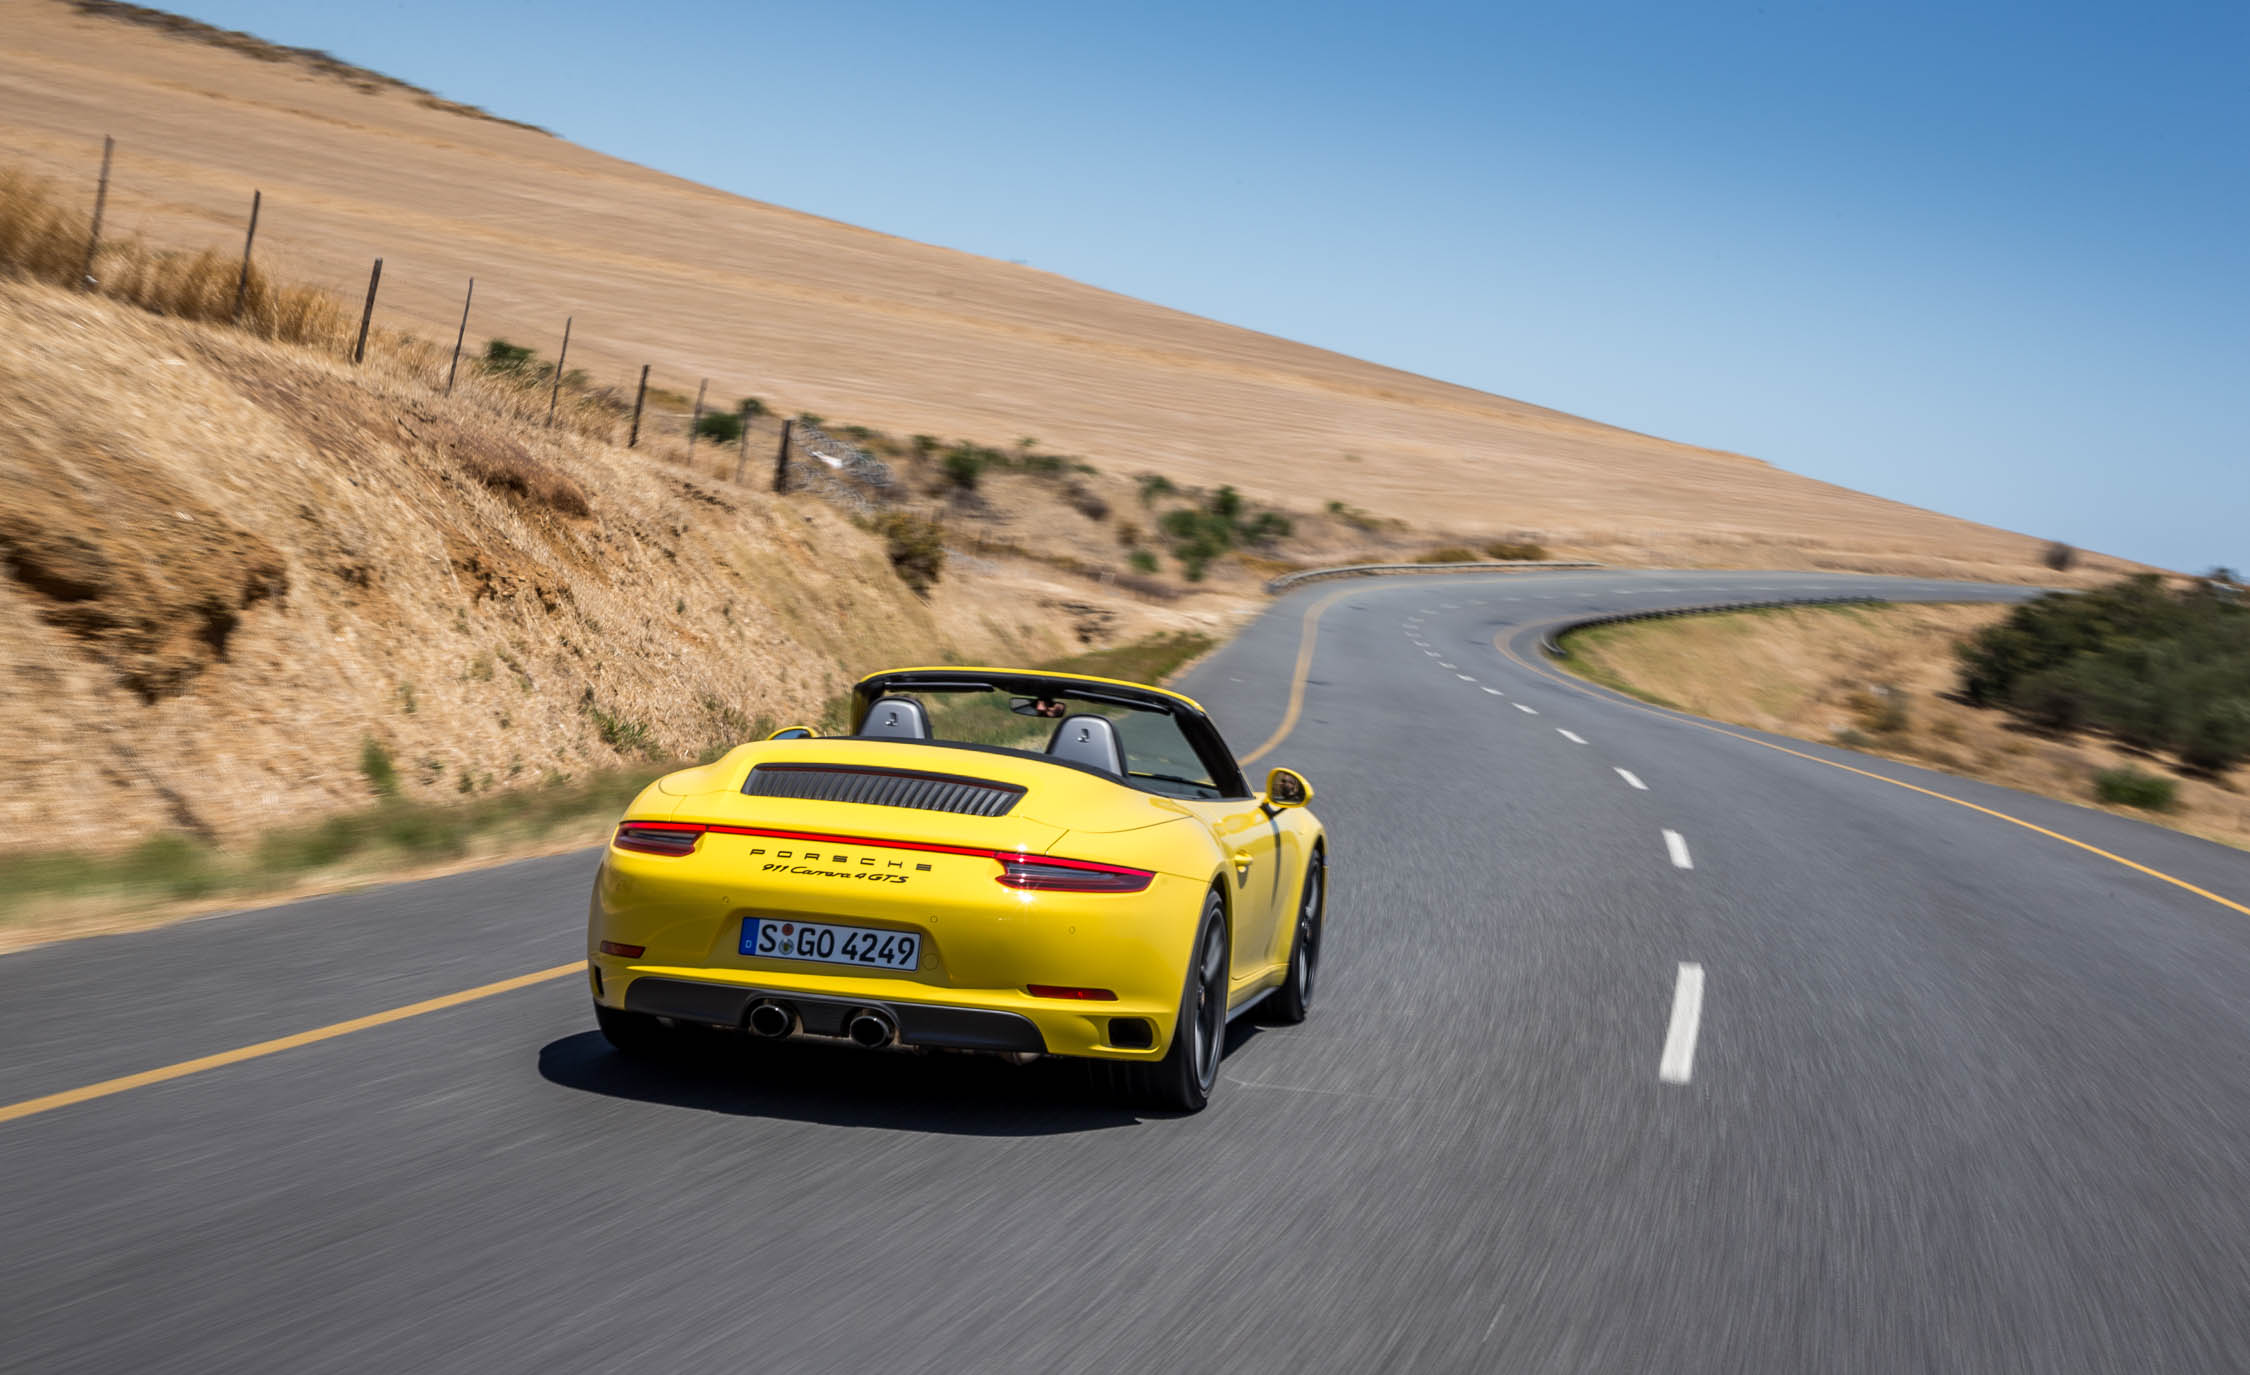 2017 Porsche 911 Carrera 4 GTS Cabriolet Test Drive Rear View (Photo 14 of 97)